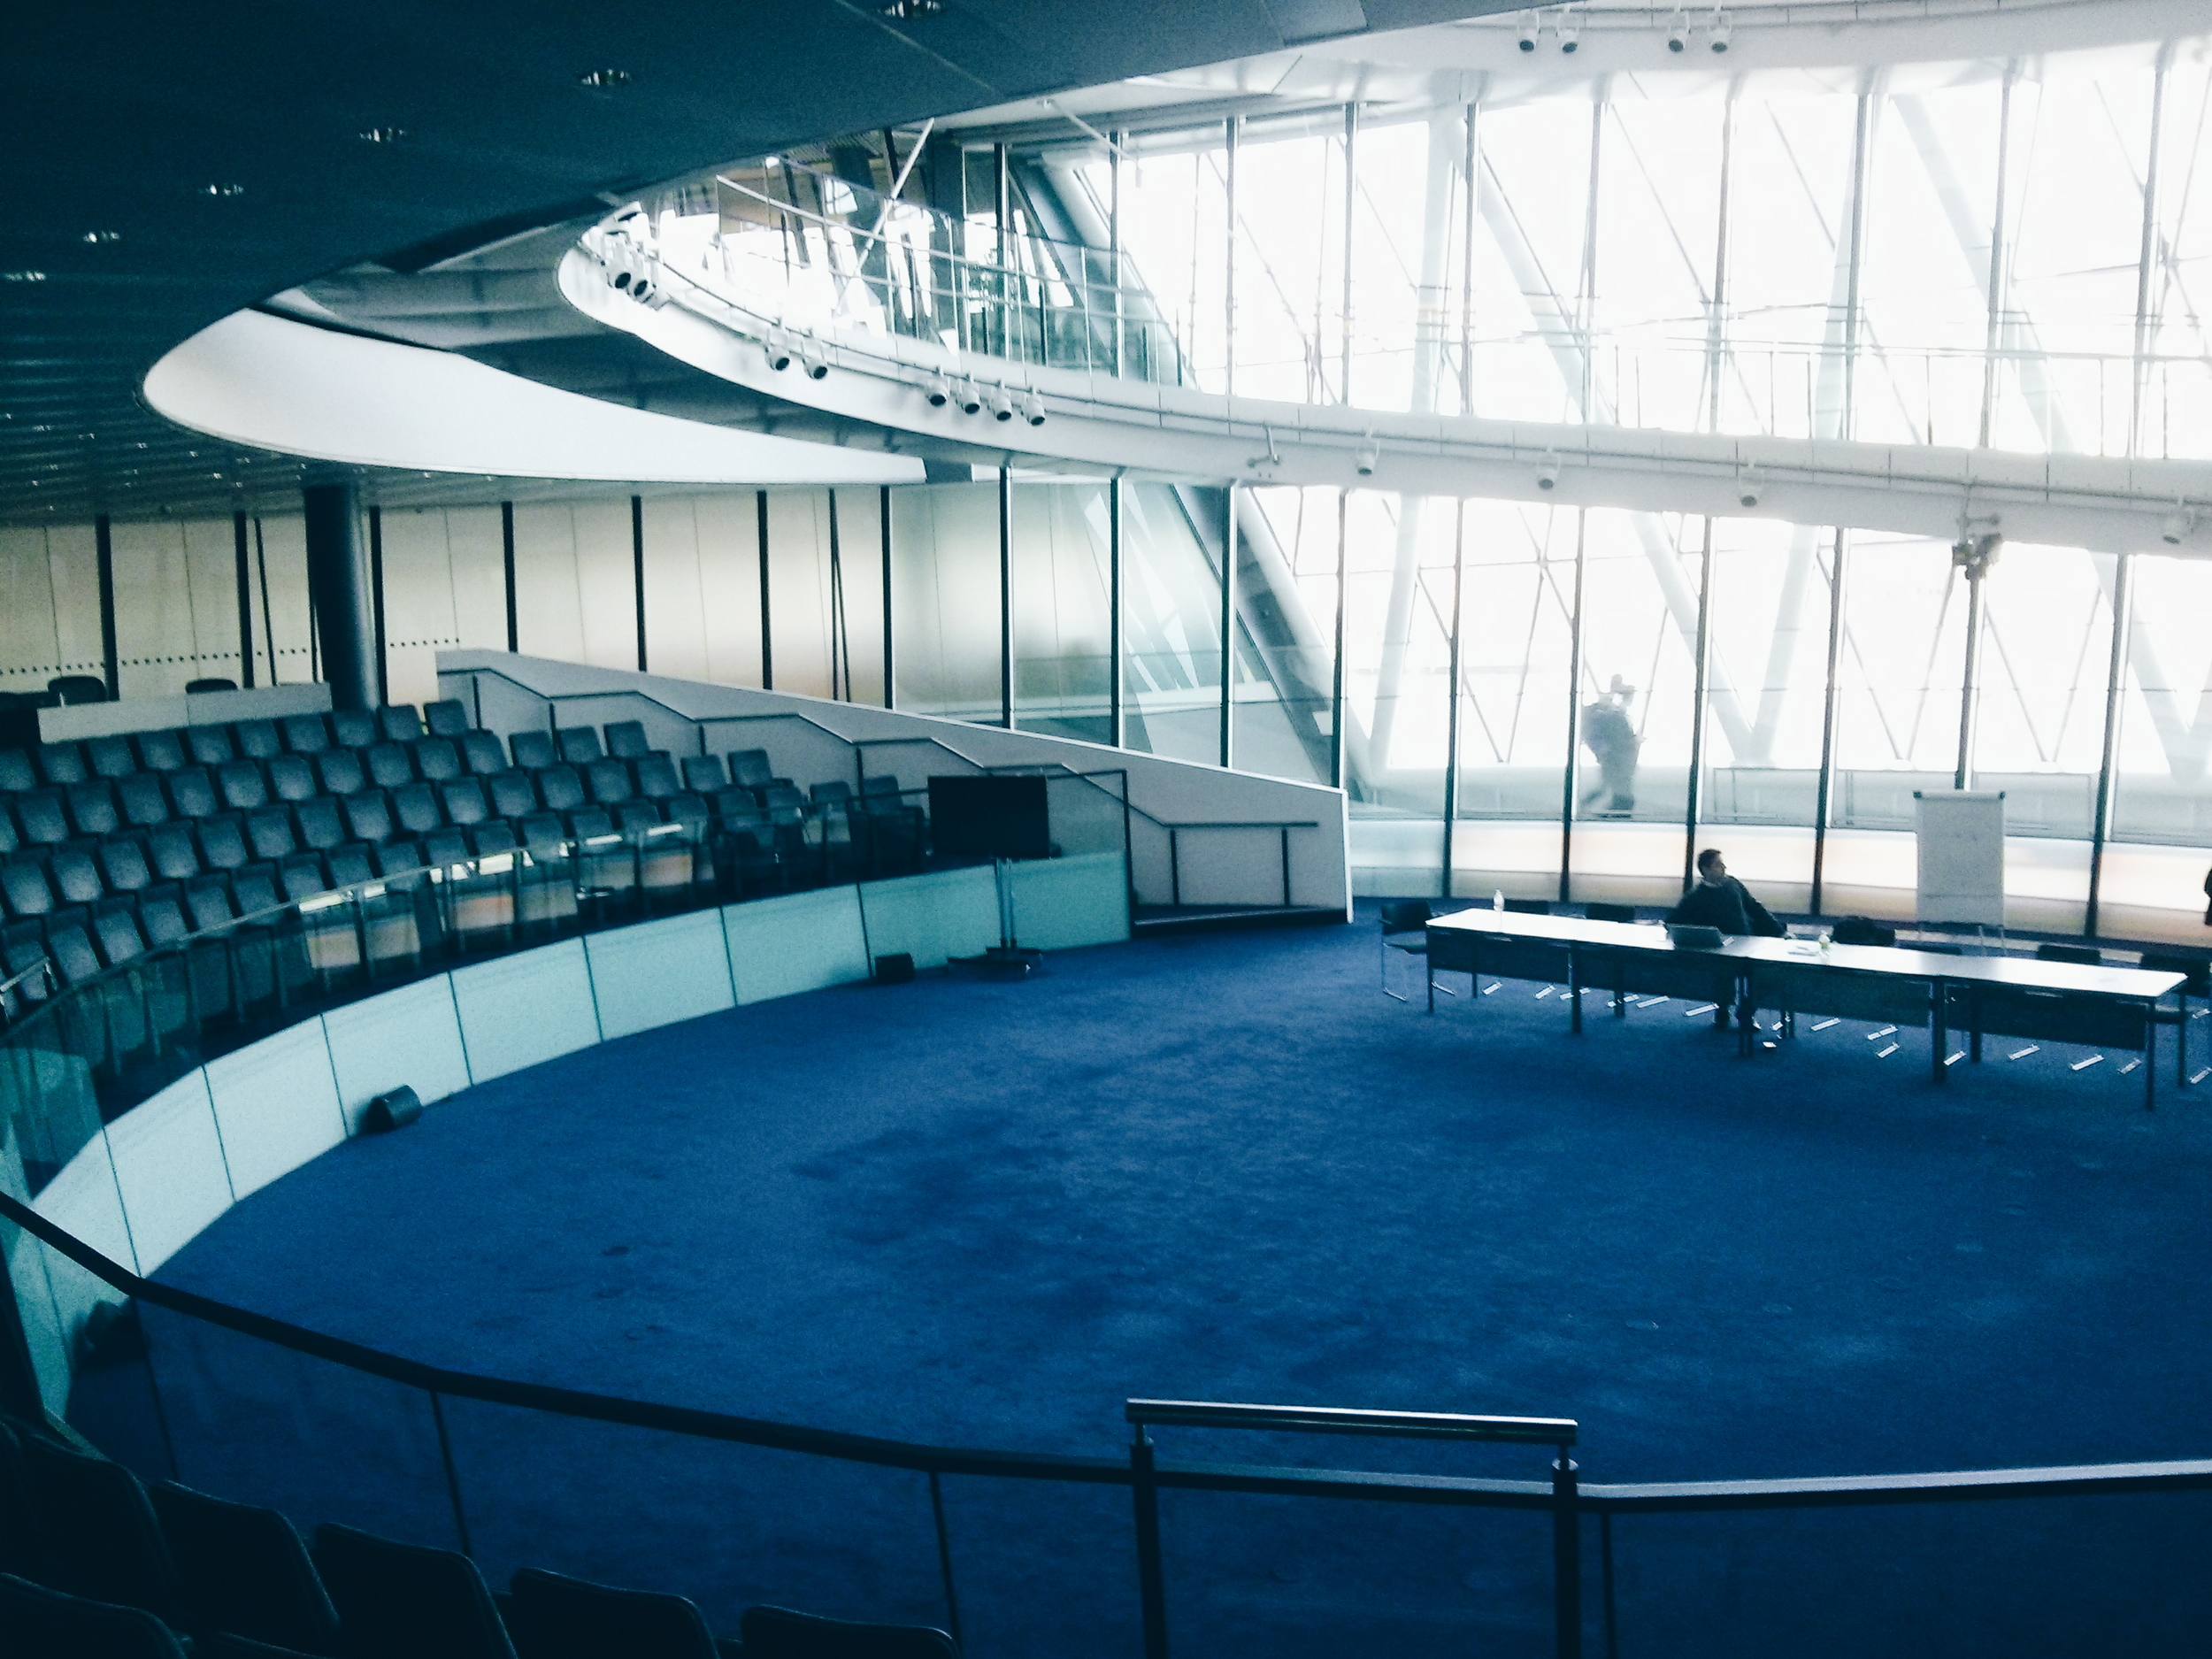 The Council Chamber at London City Hall